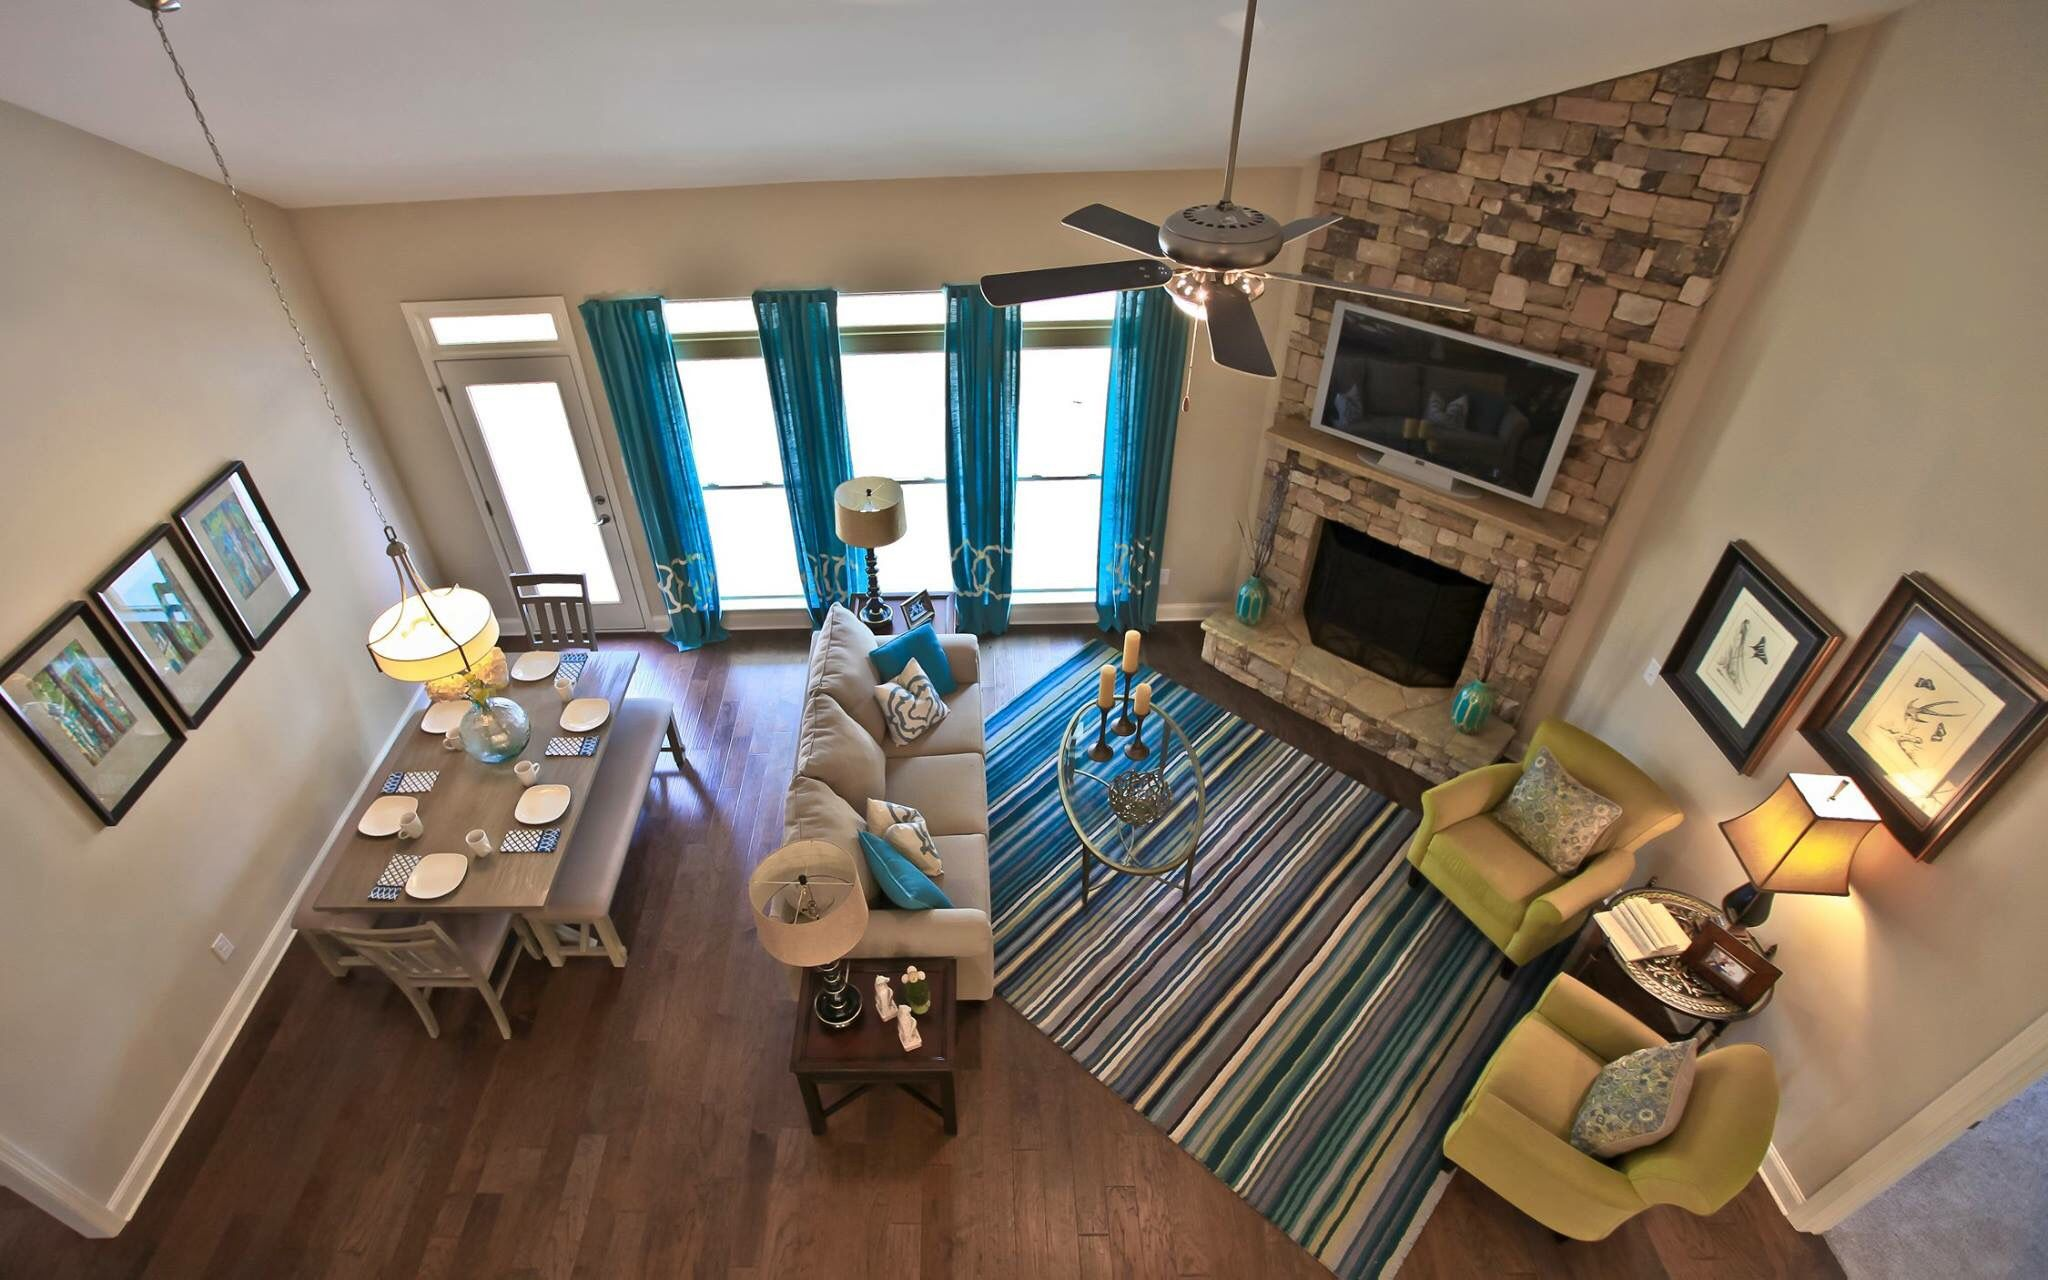 Check out this amazing view from the loft inside model home at bakers farm in braselton also living dream interior pinterest interiors rh